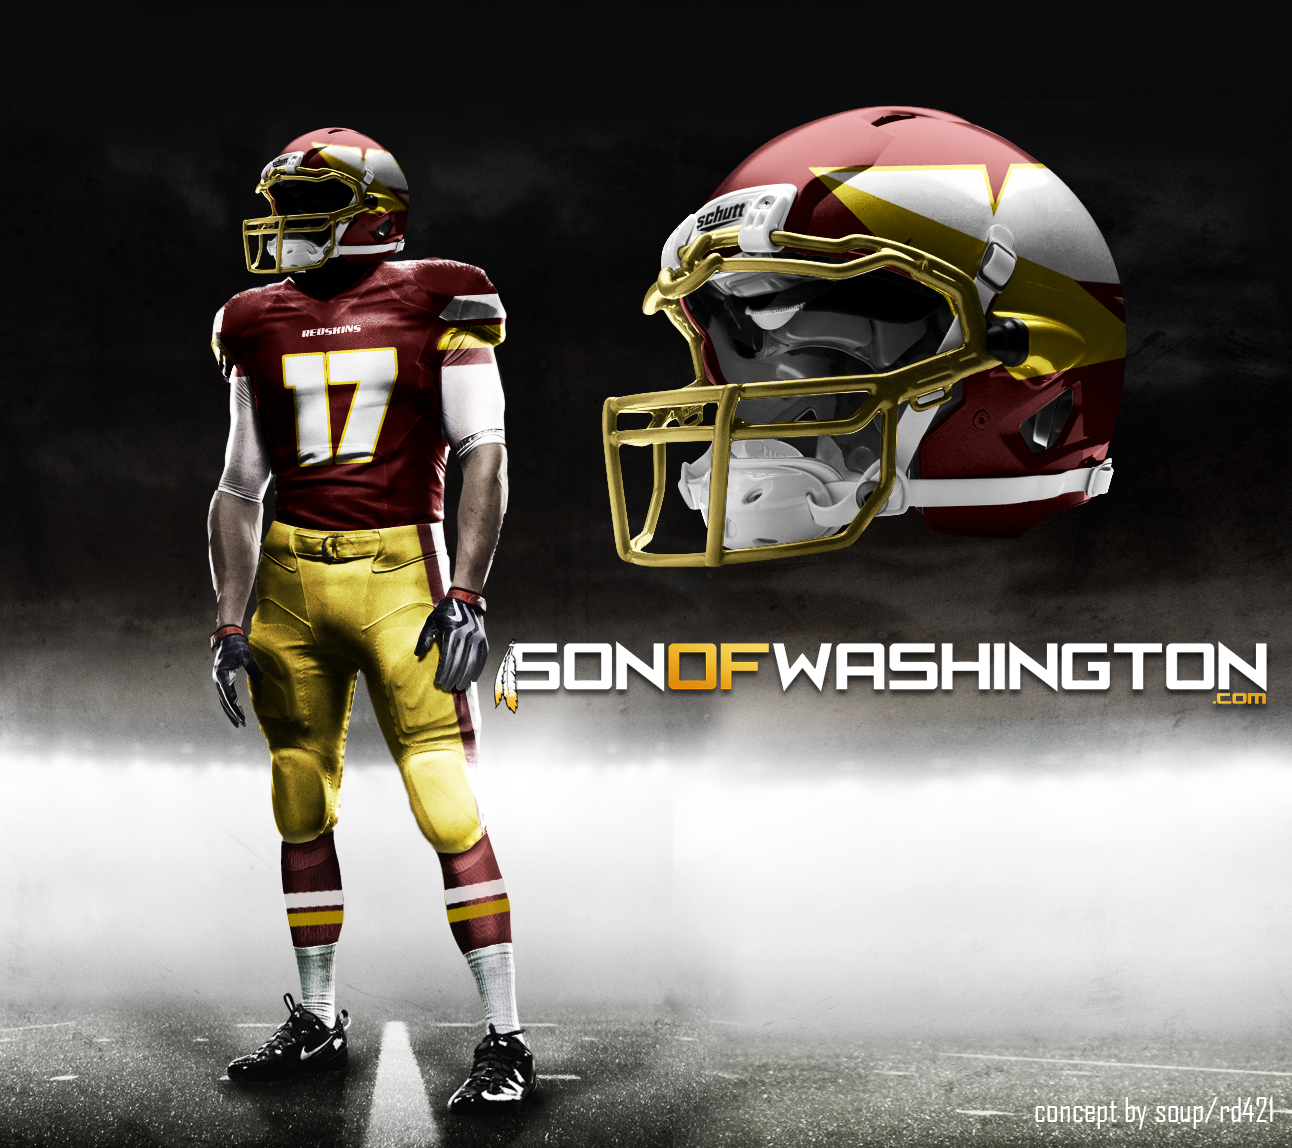 redskins-nike-uniform-concept.jpg